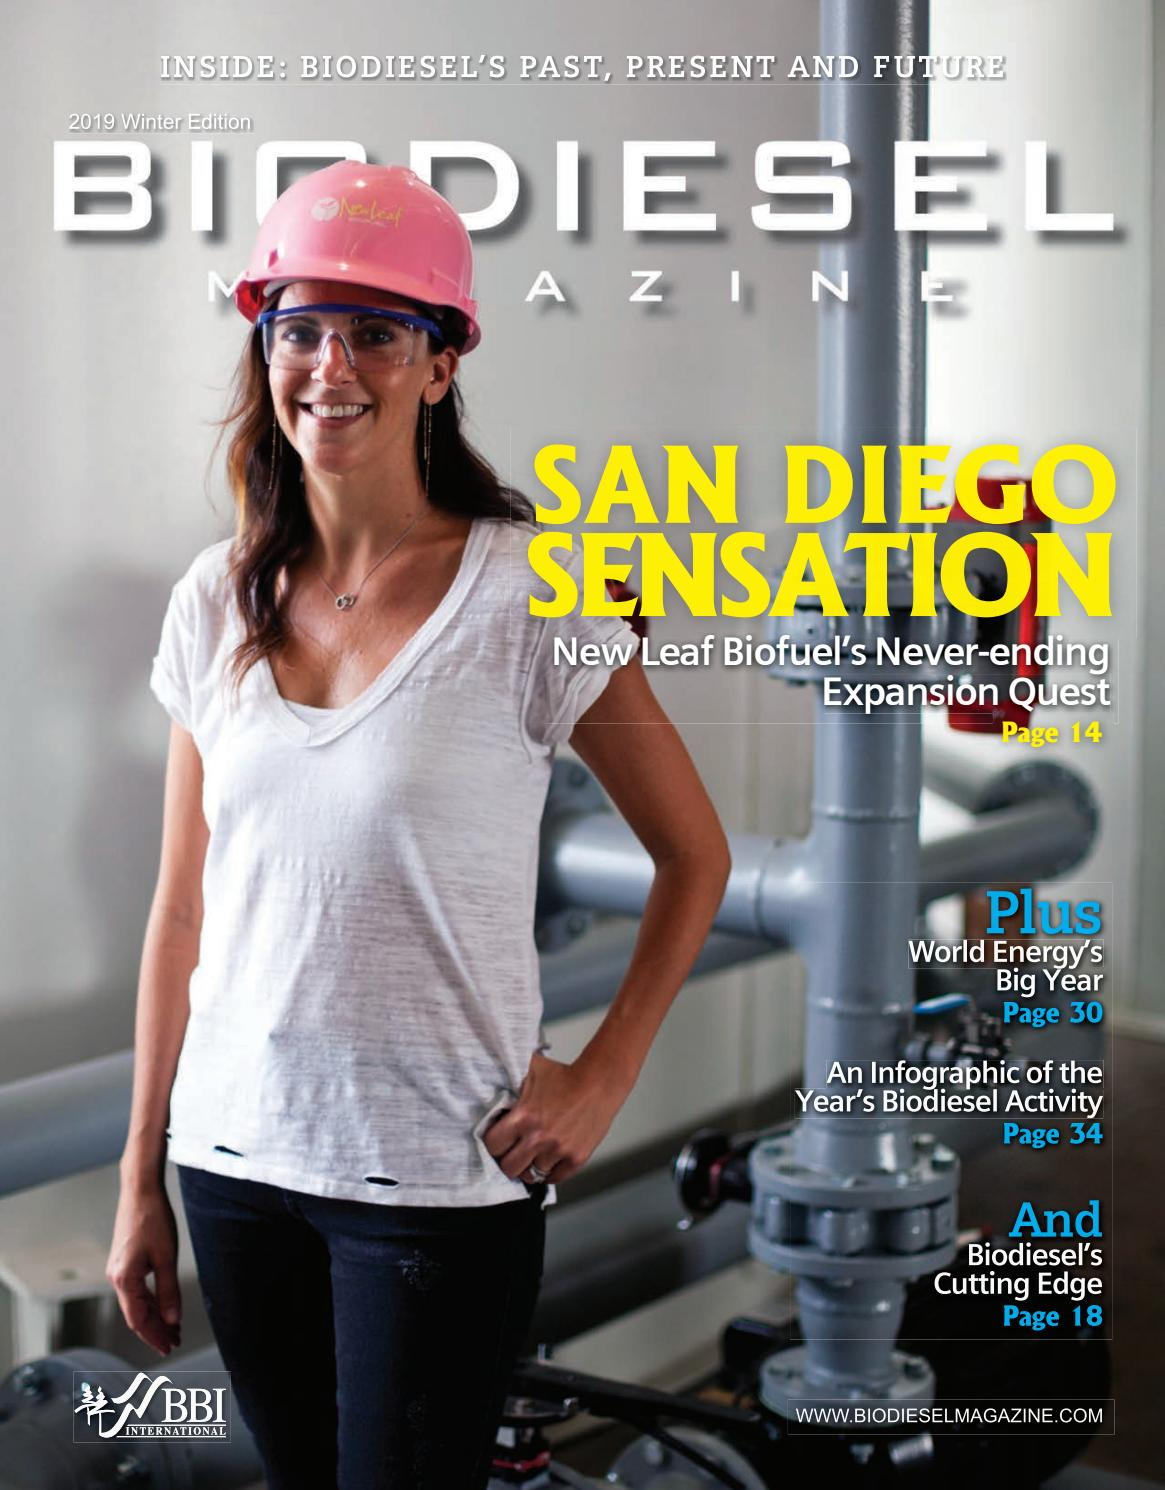 df3c093de04 2019 Winter Biodiesel Magazine Biodiesel Industry Directory by BBI  International - issuu